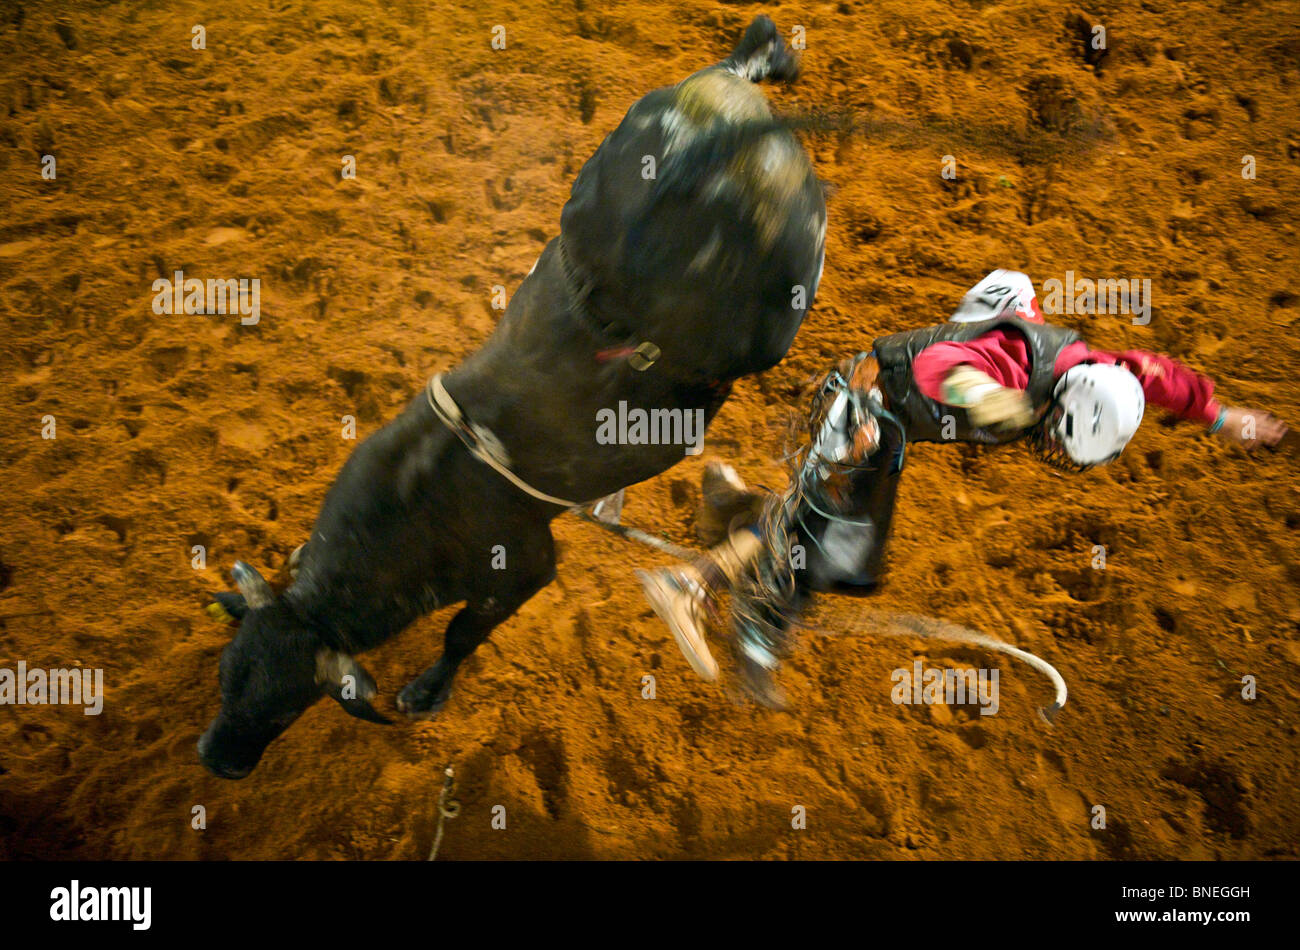 Rodeo member of PRCA jumping from bull at Smalltown in Bridgeport Texas, USA Stock Photo